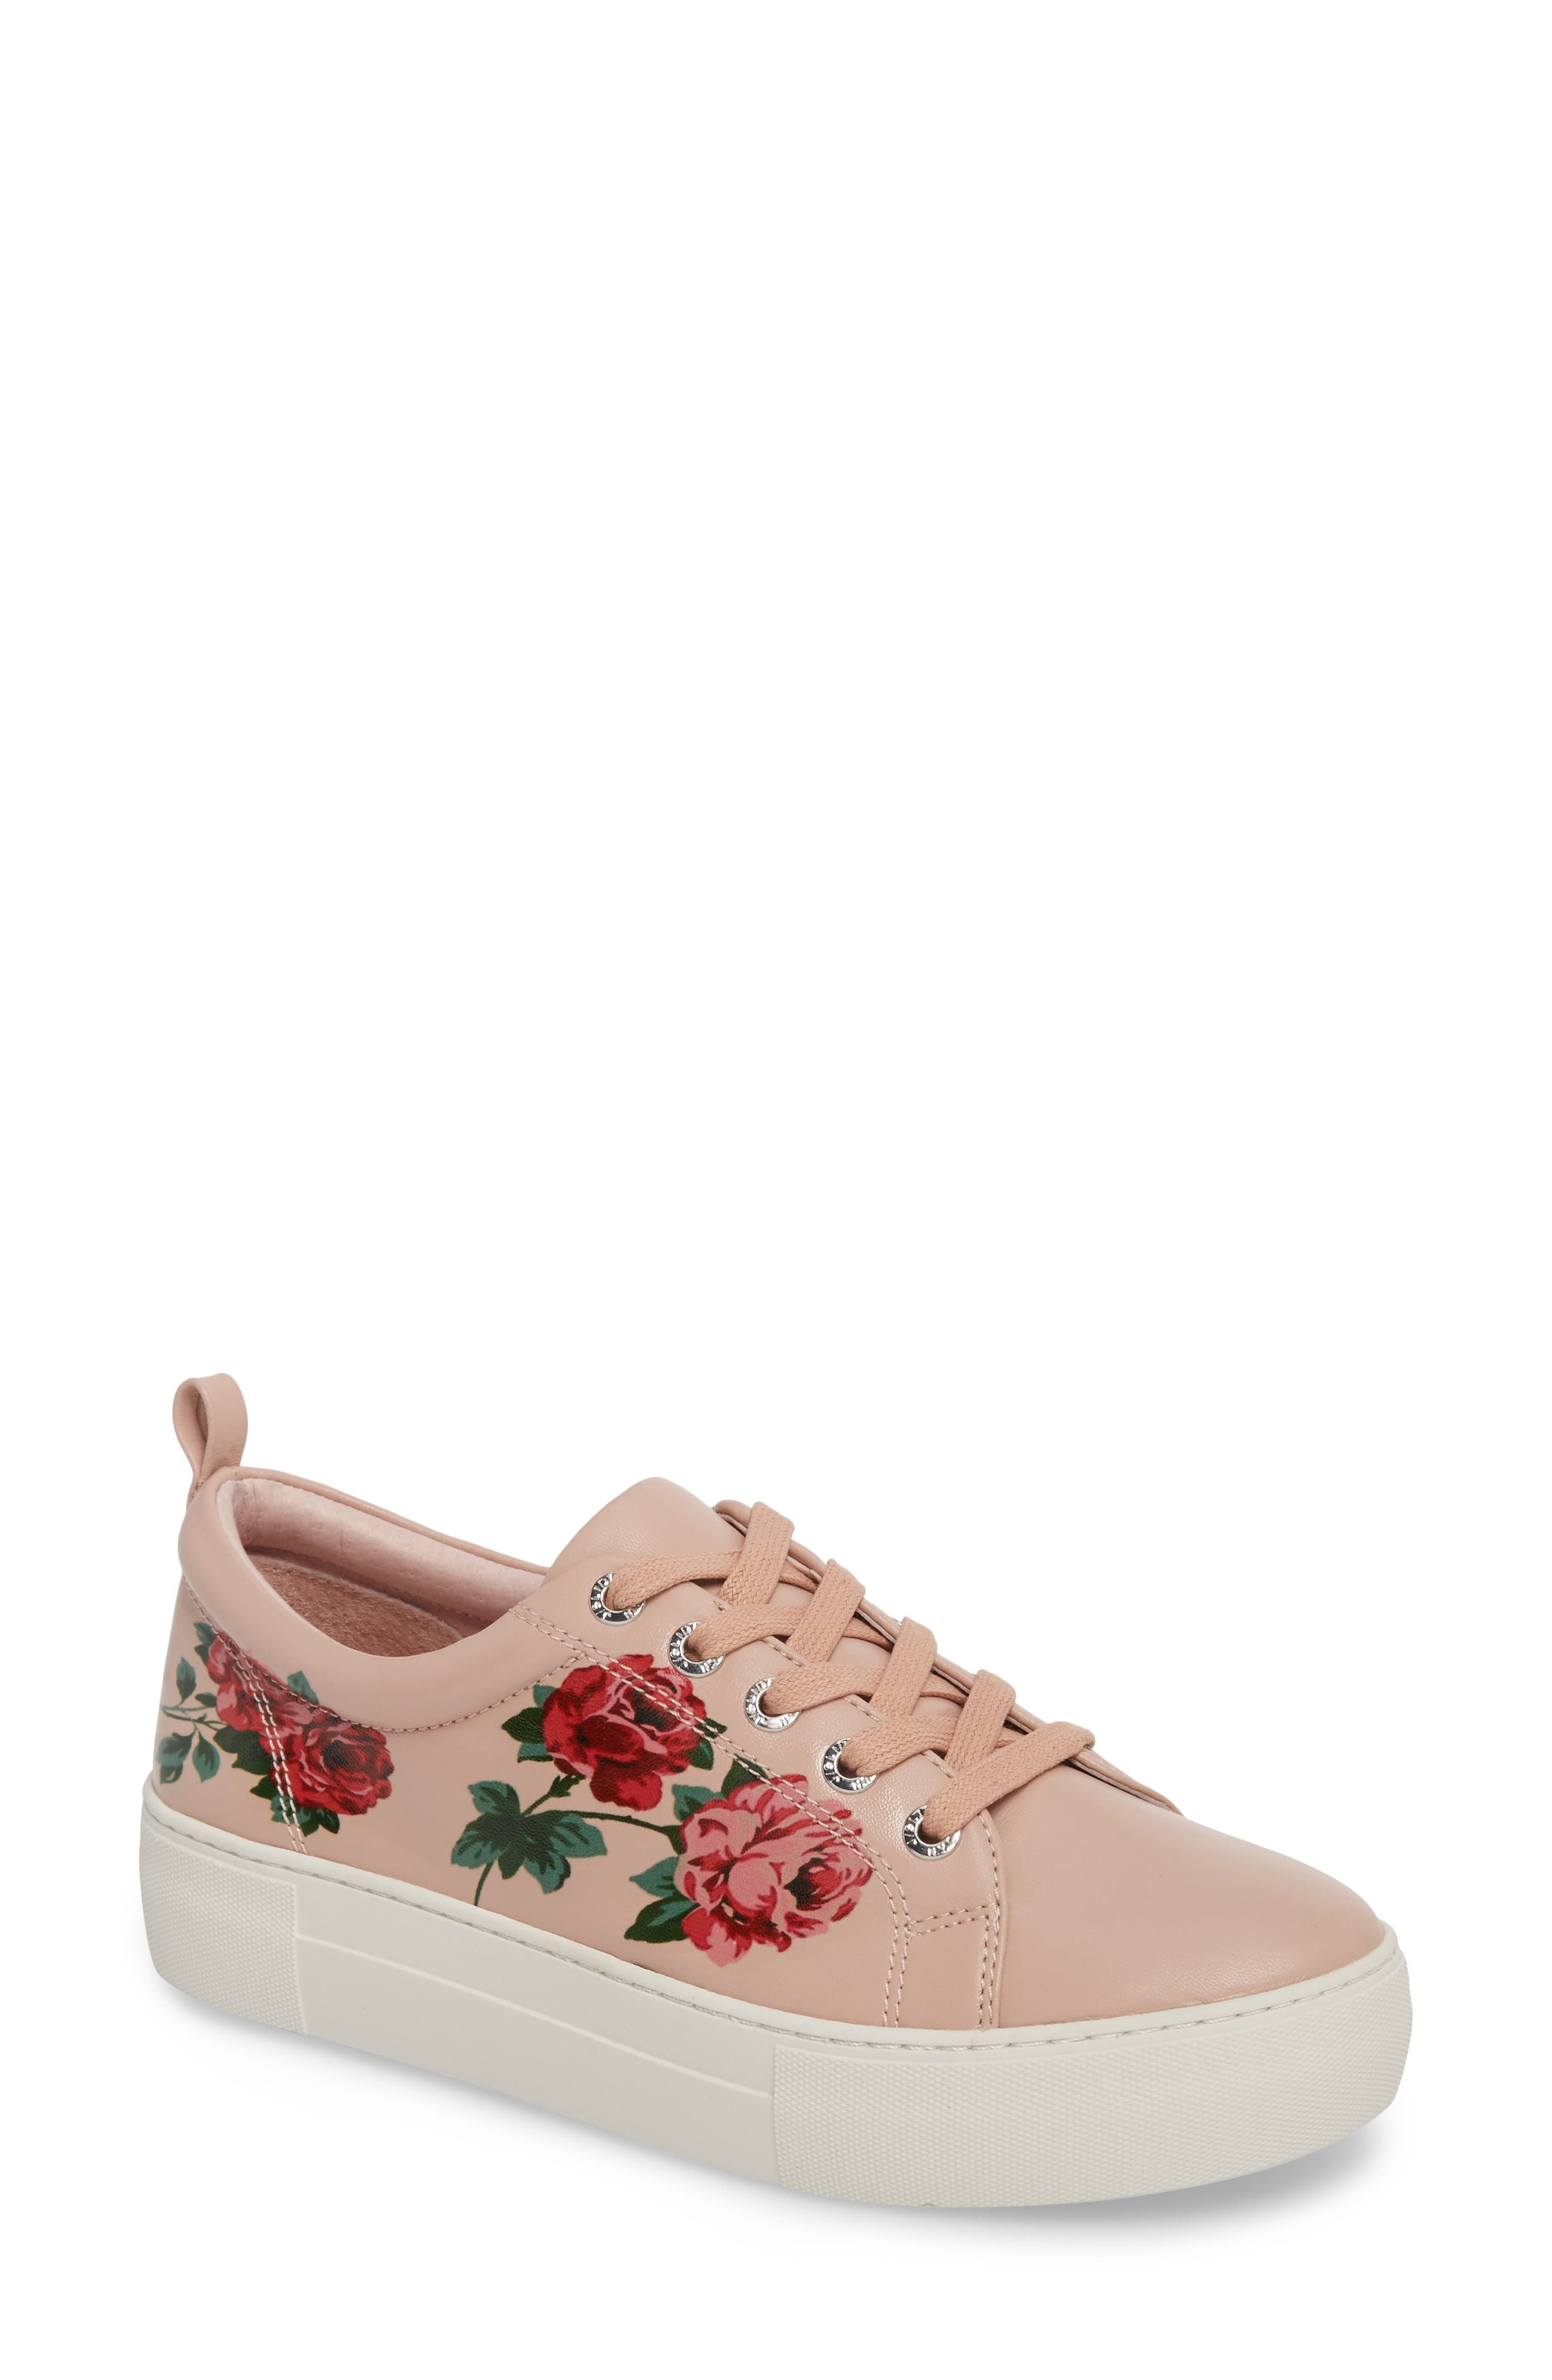 Adel Floral Sneaker,                         Main,                         color, Pink Leather